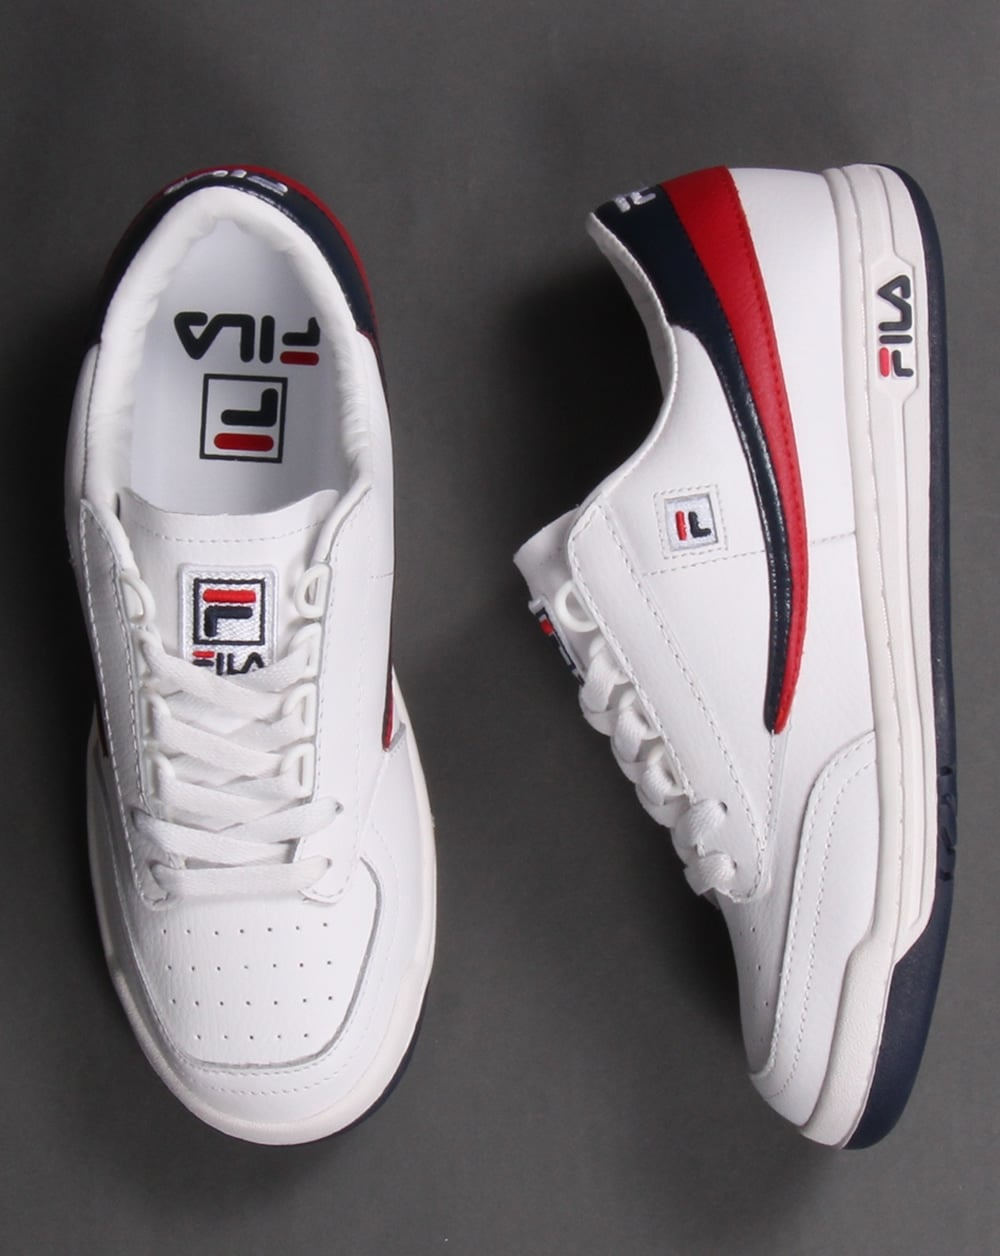 Fila Vintage Original Tennis Trainers White  Navy  Red Shoes